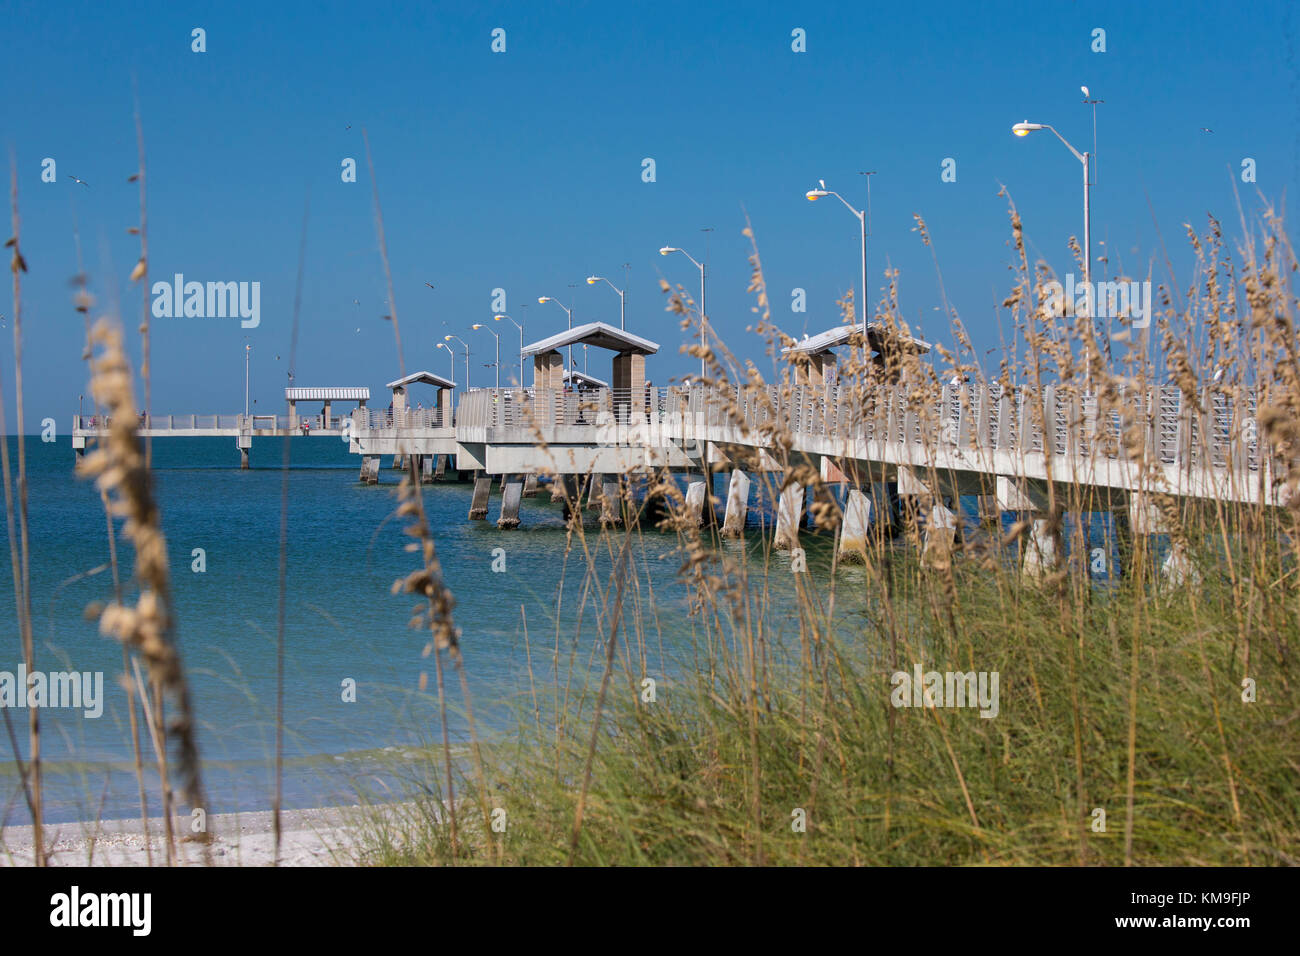 Florida fishing pier stock photos florida fishing pier for Fort desoto fishing pier